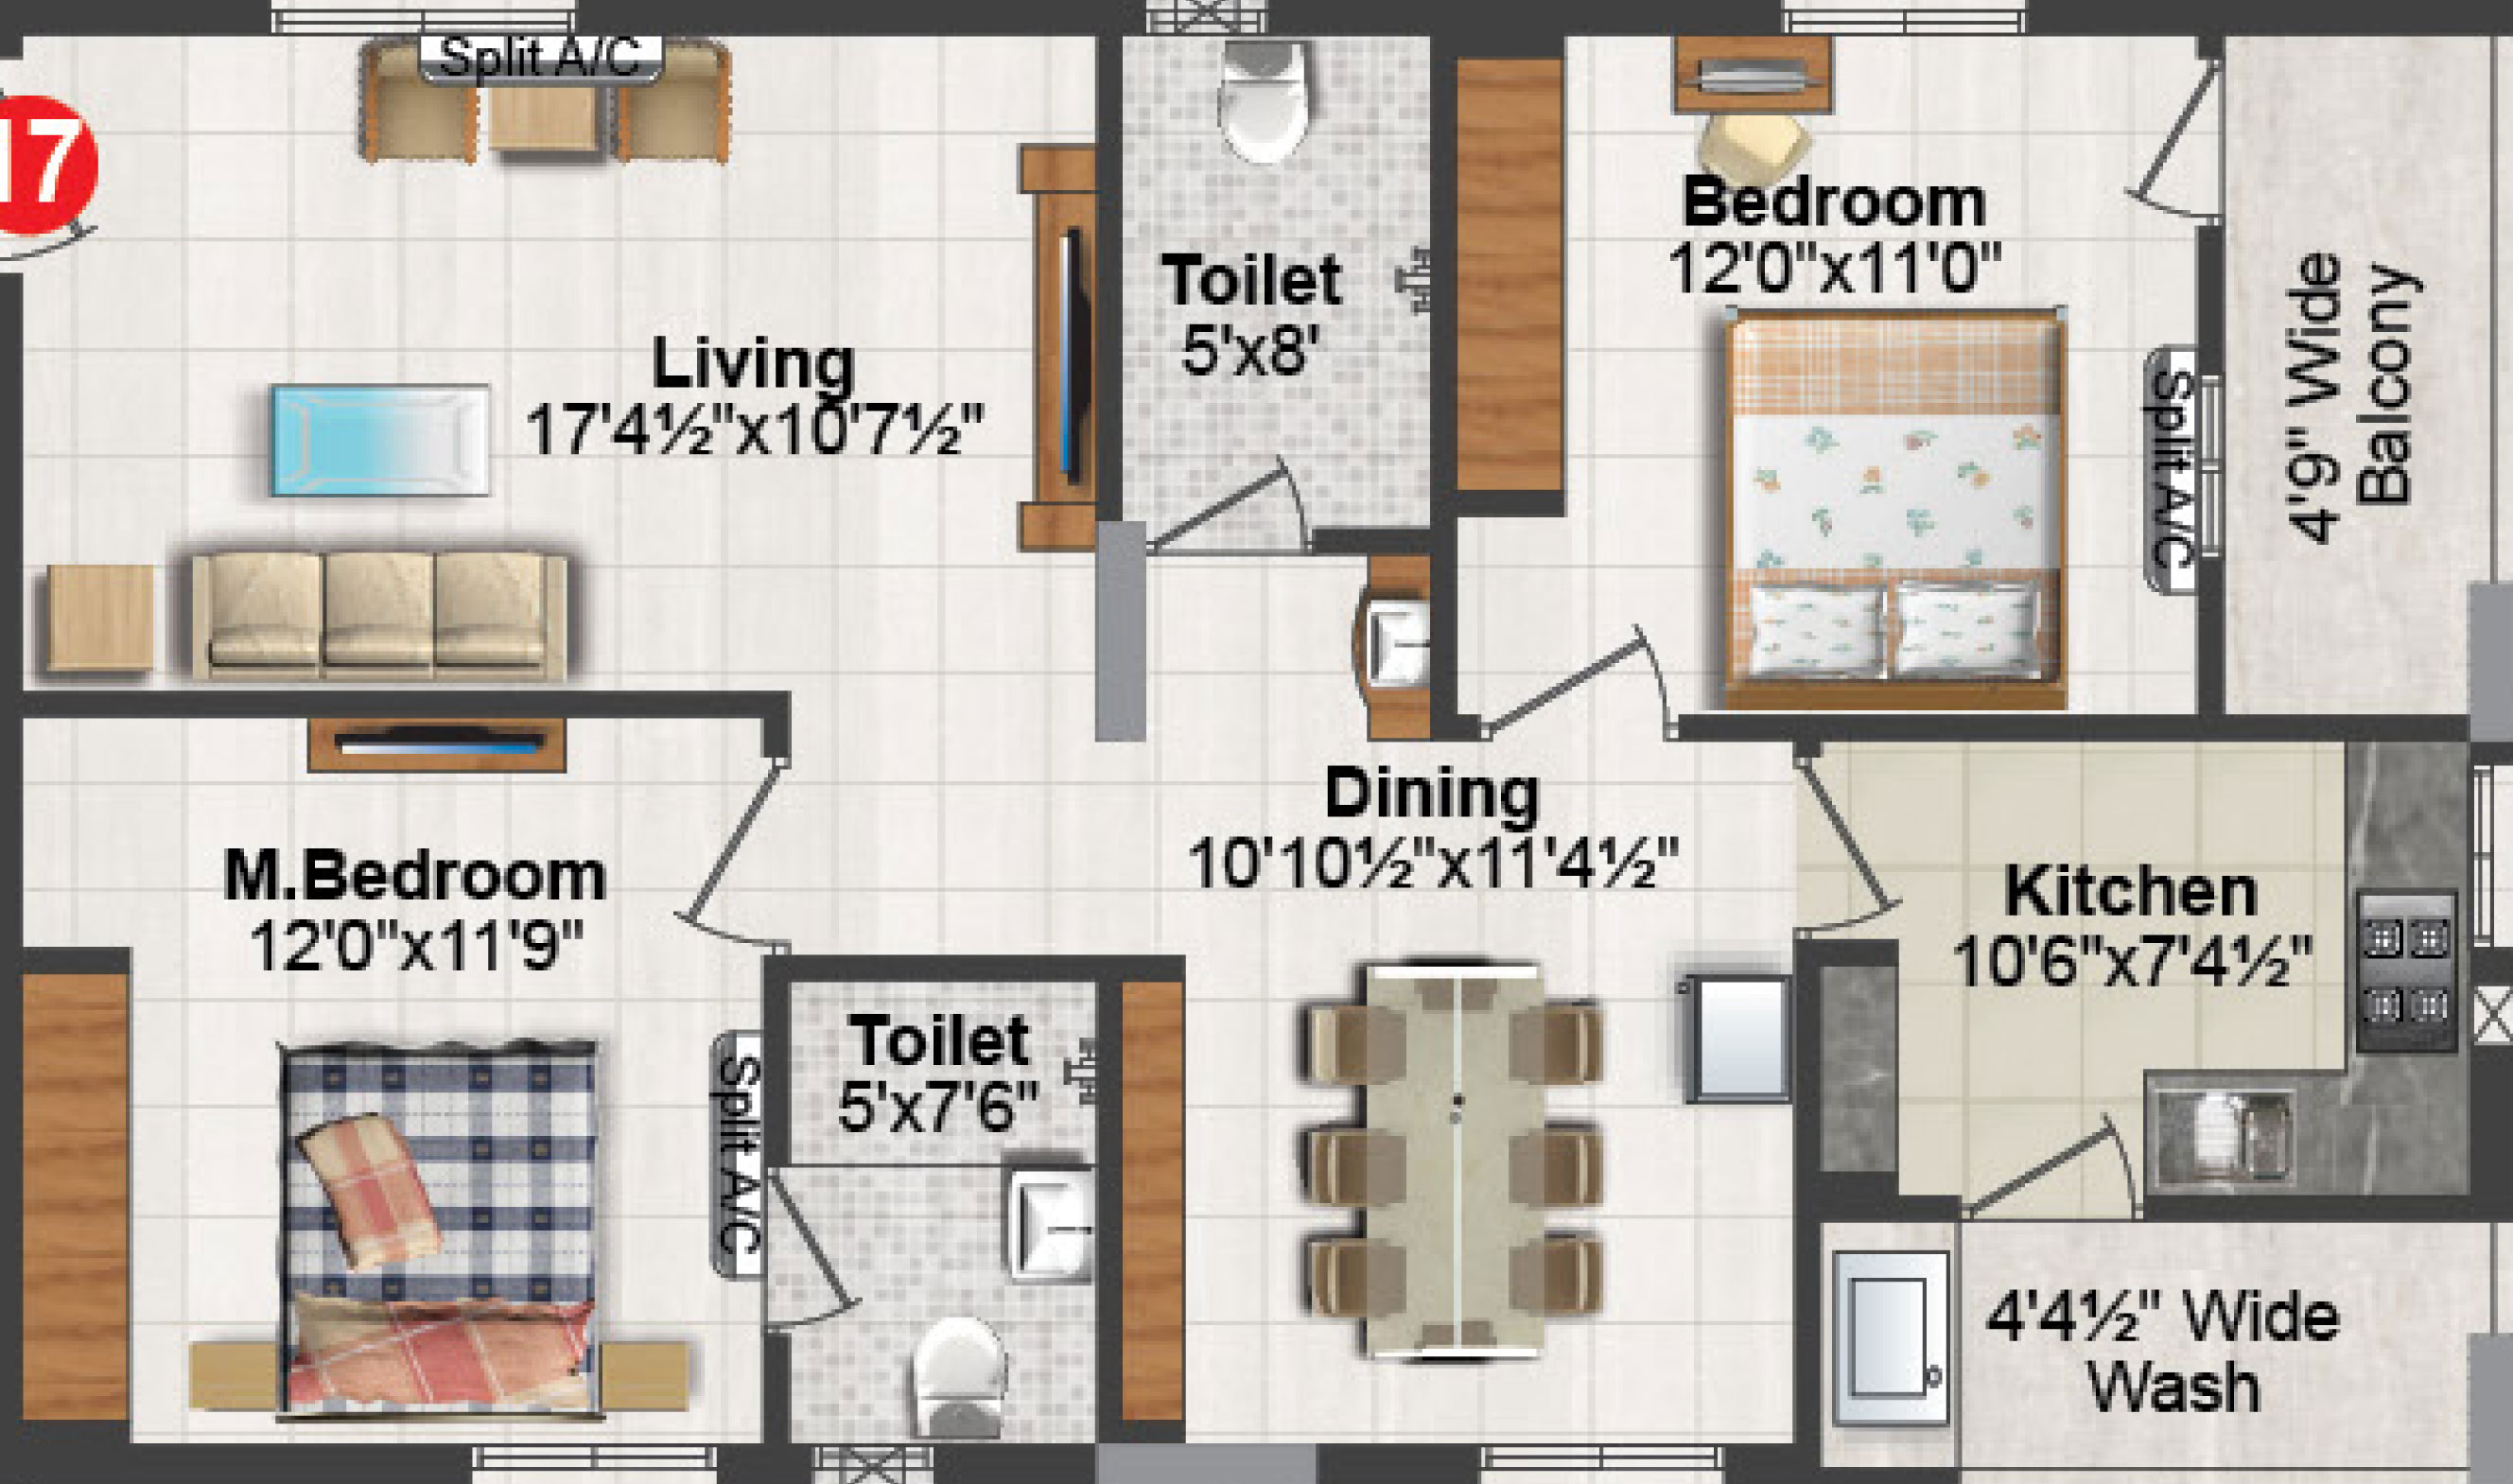 The sankalp floorplan 1330sqft north facing